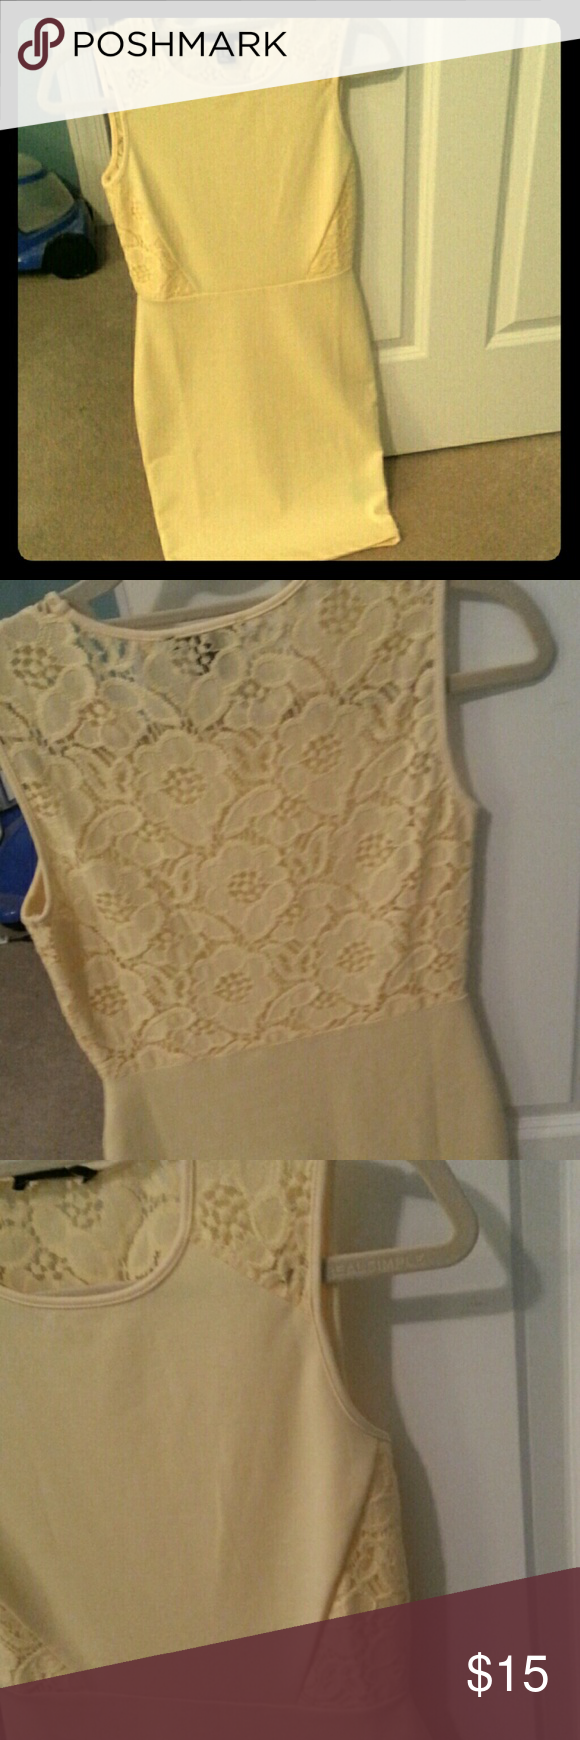 H&m yellow lace dress  Yellow Dress with Lace Back  Yellow dress Minis and Customer support